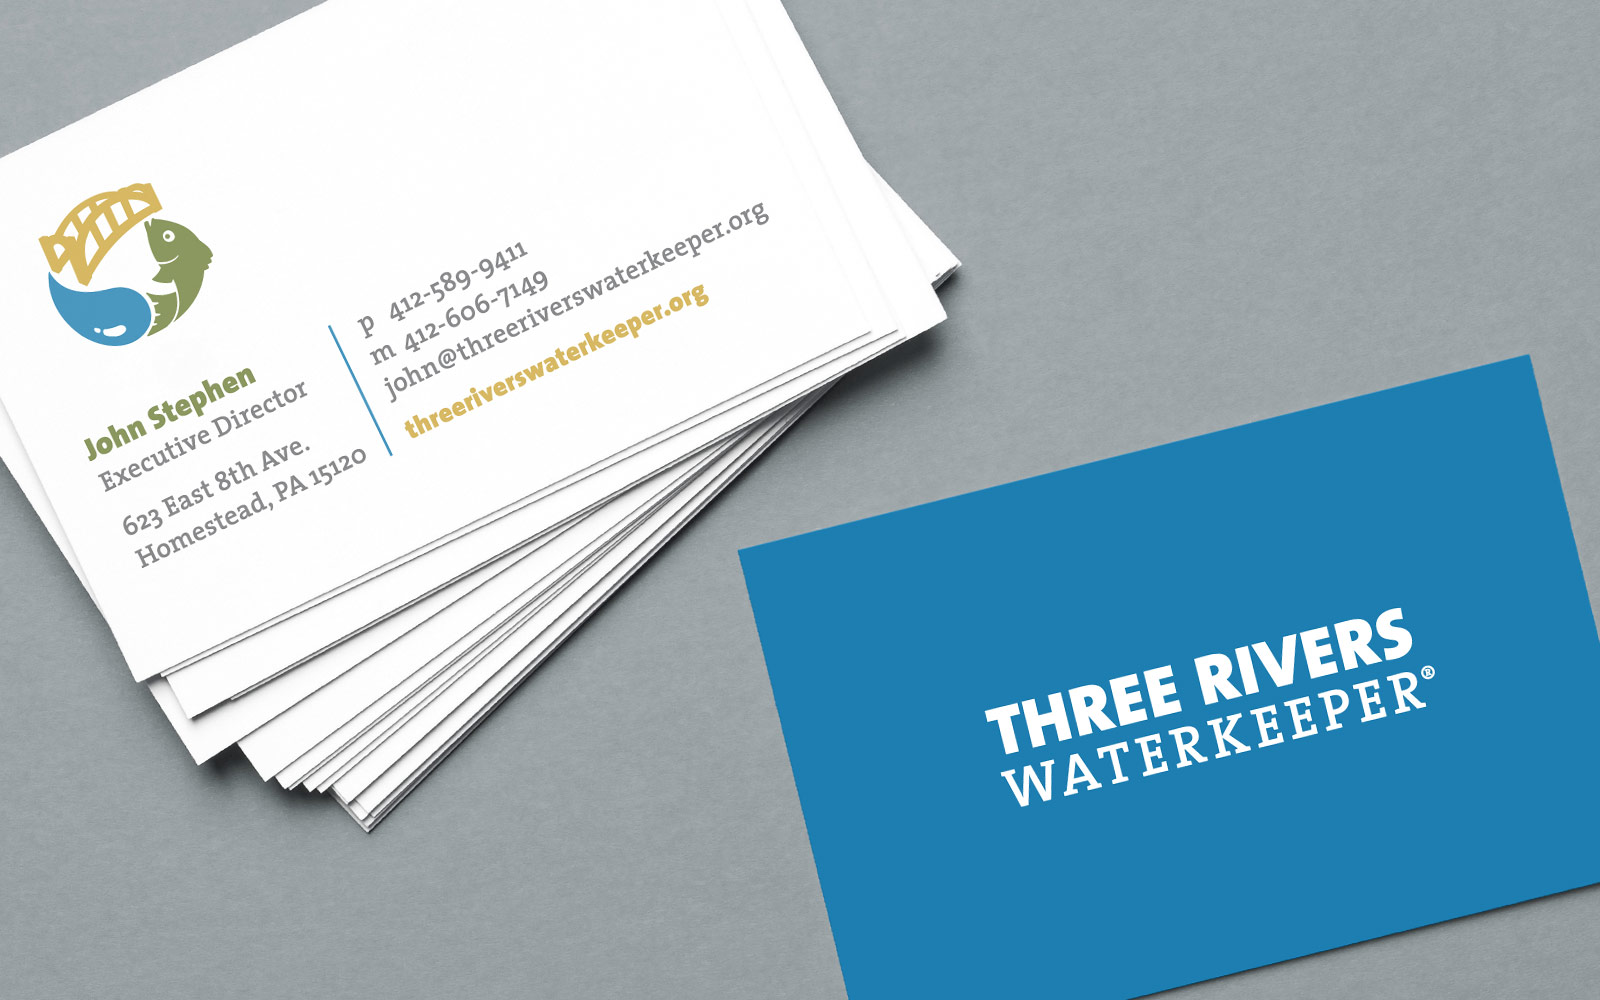 Thinkbox  Business Card Design Inspiration  Card Nerd  Biz